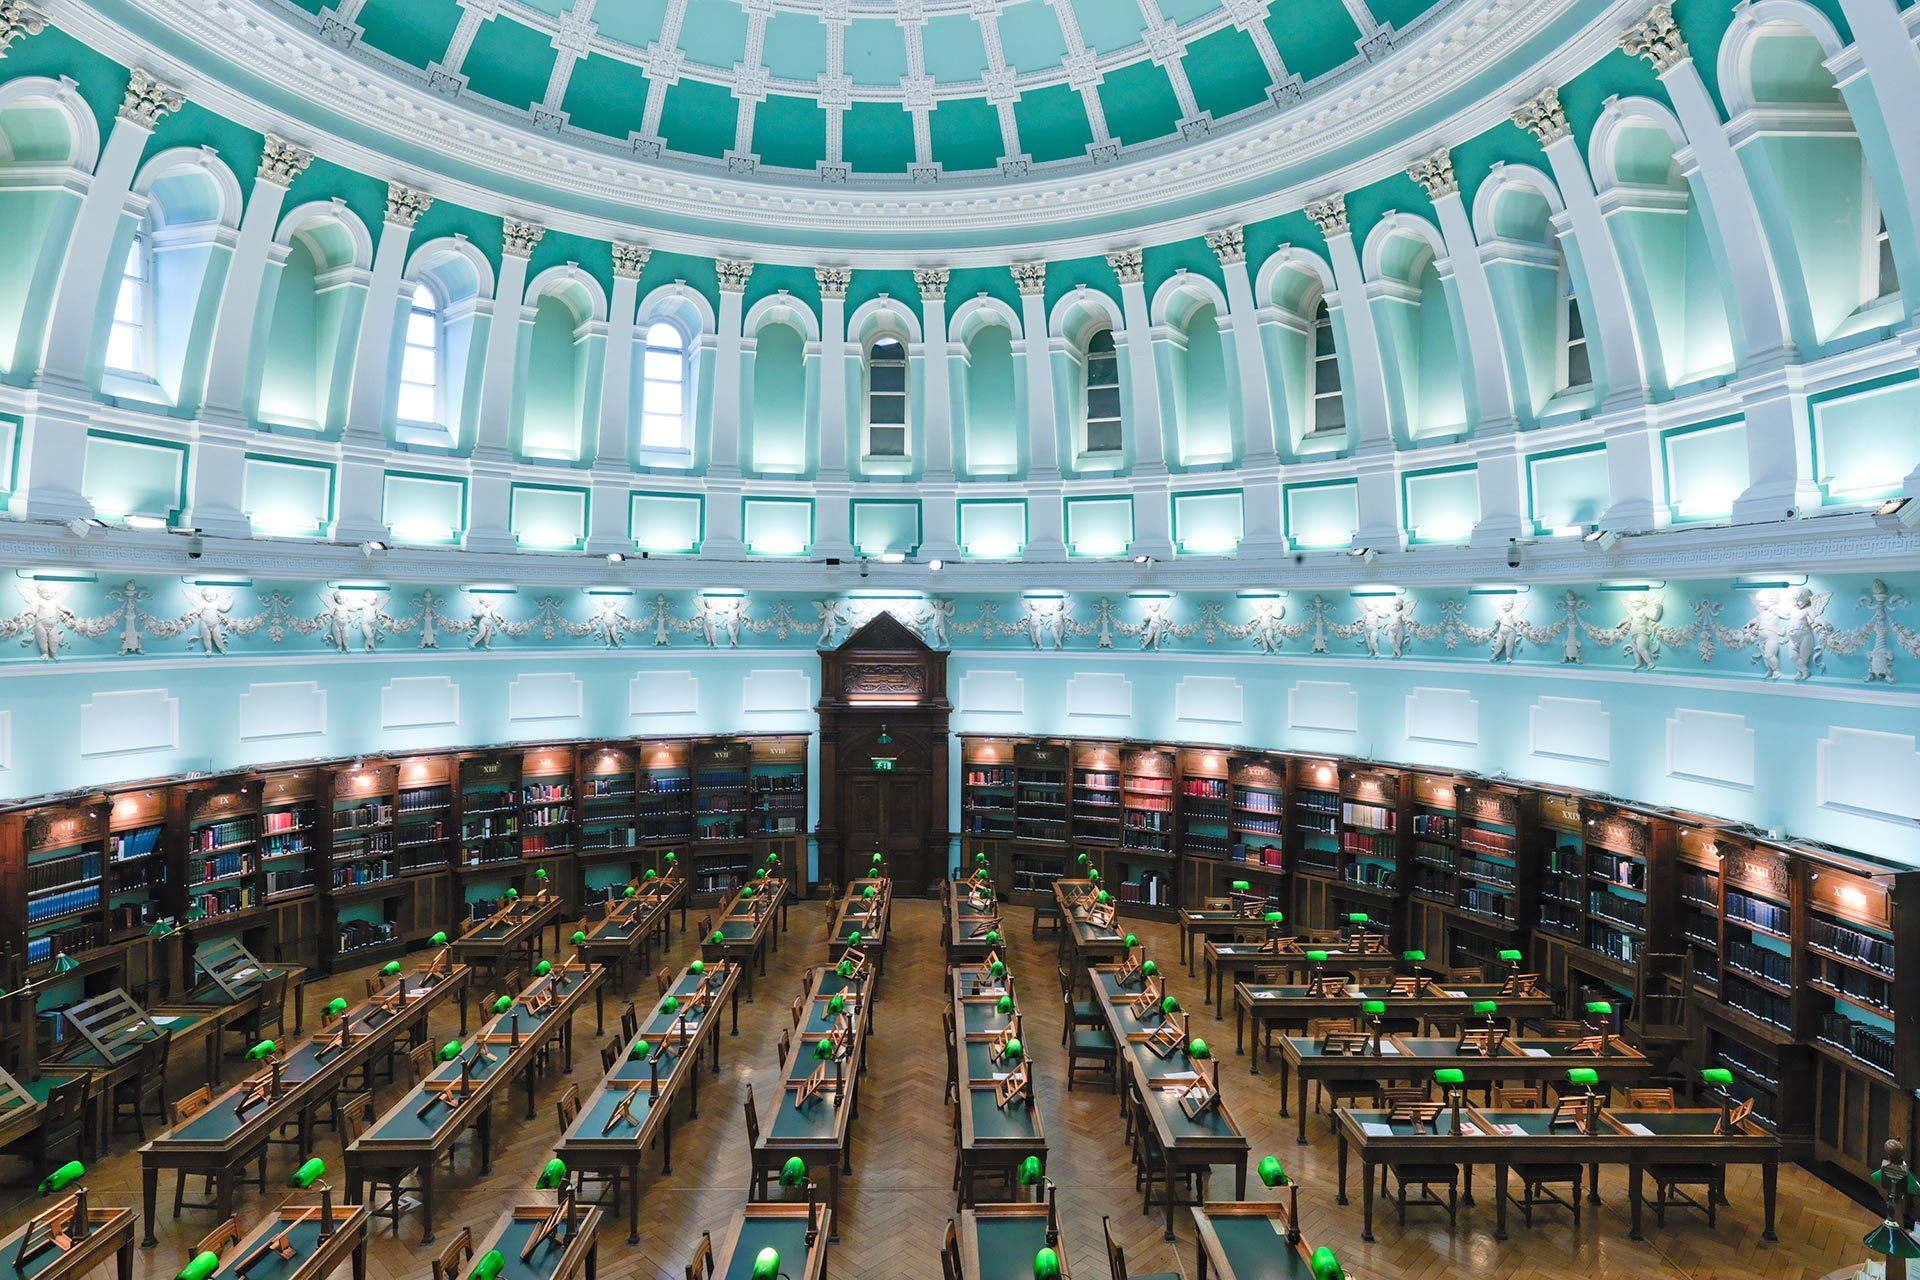 National Library of Ireland in Dublin.